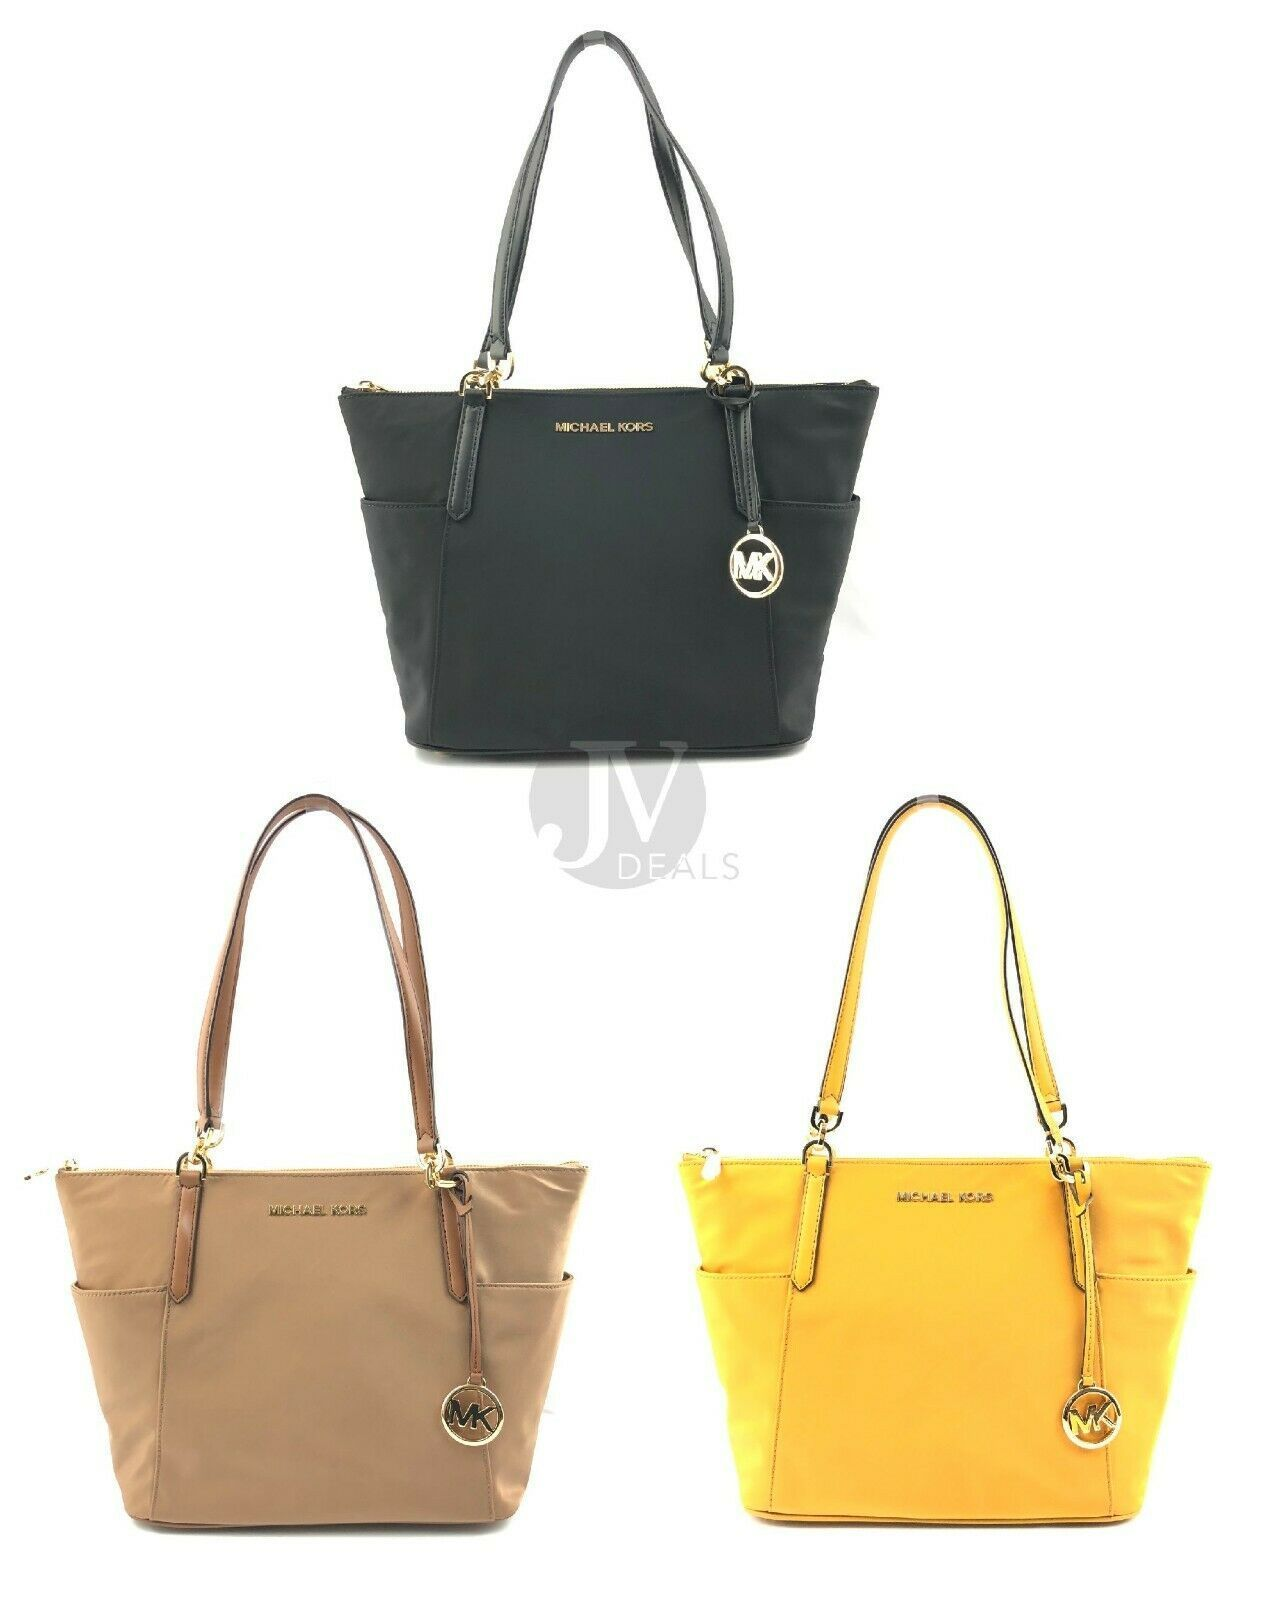 Primary image for Michael Kors Bedford Large East West Top Zip Nylon Tote Hand Bag